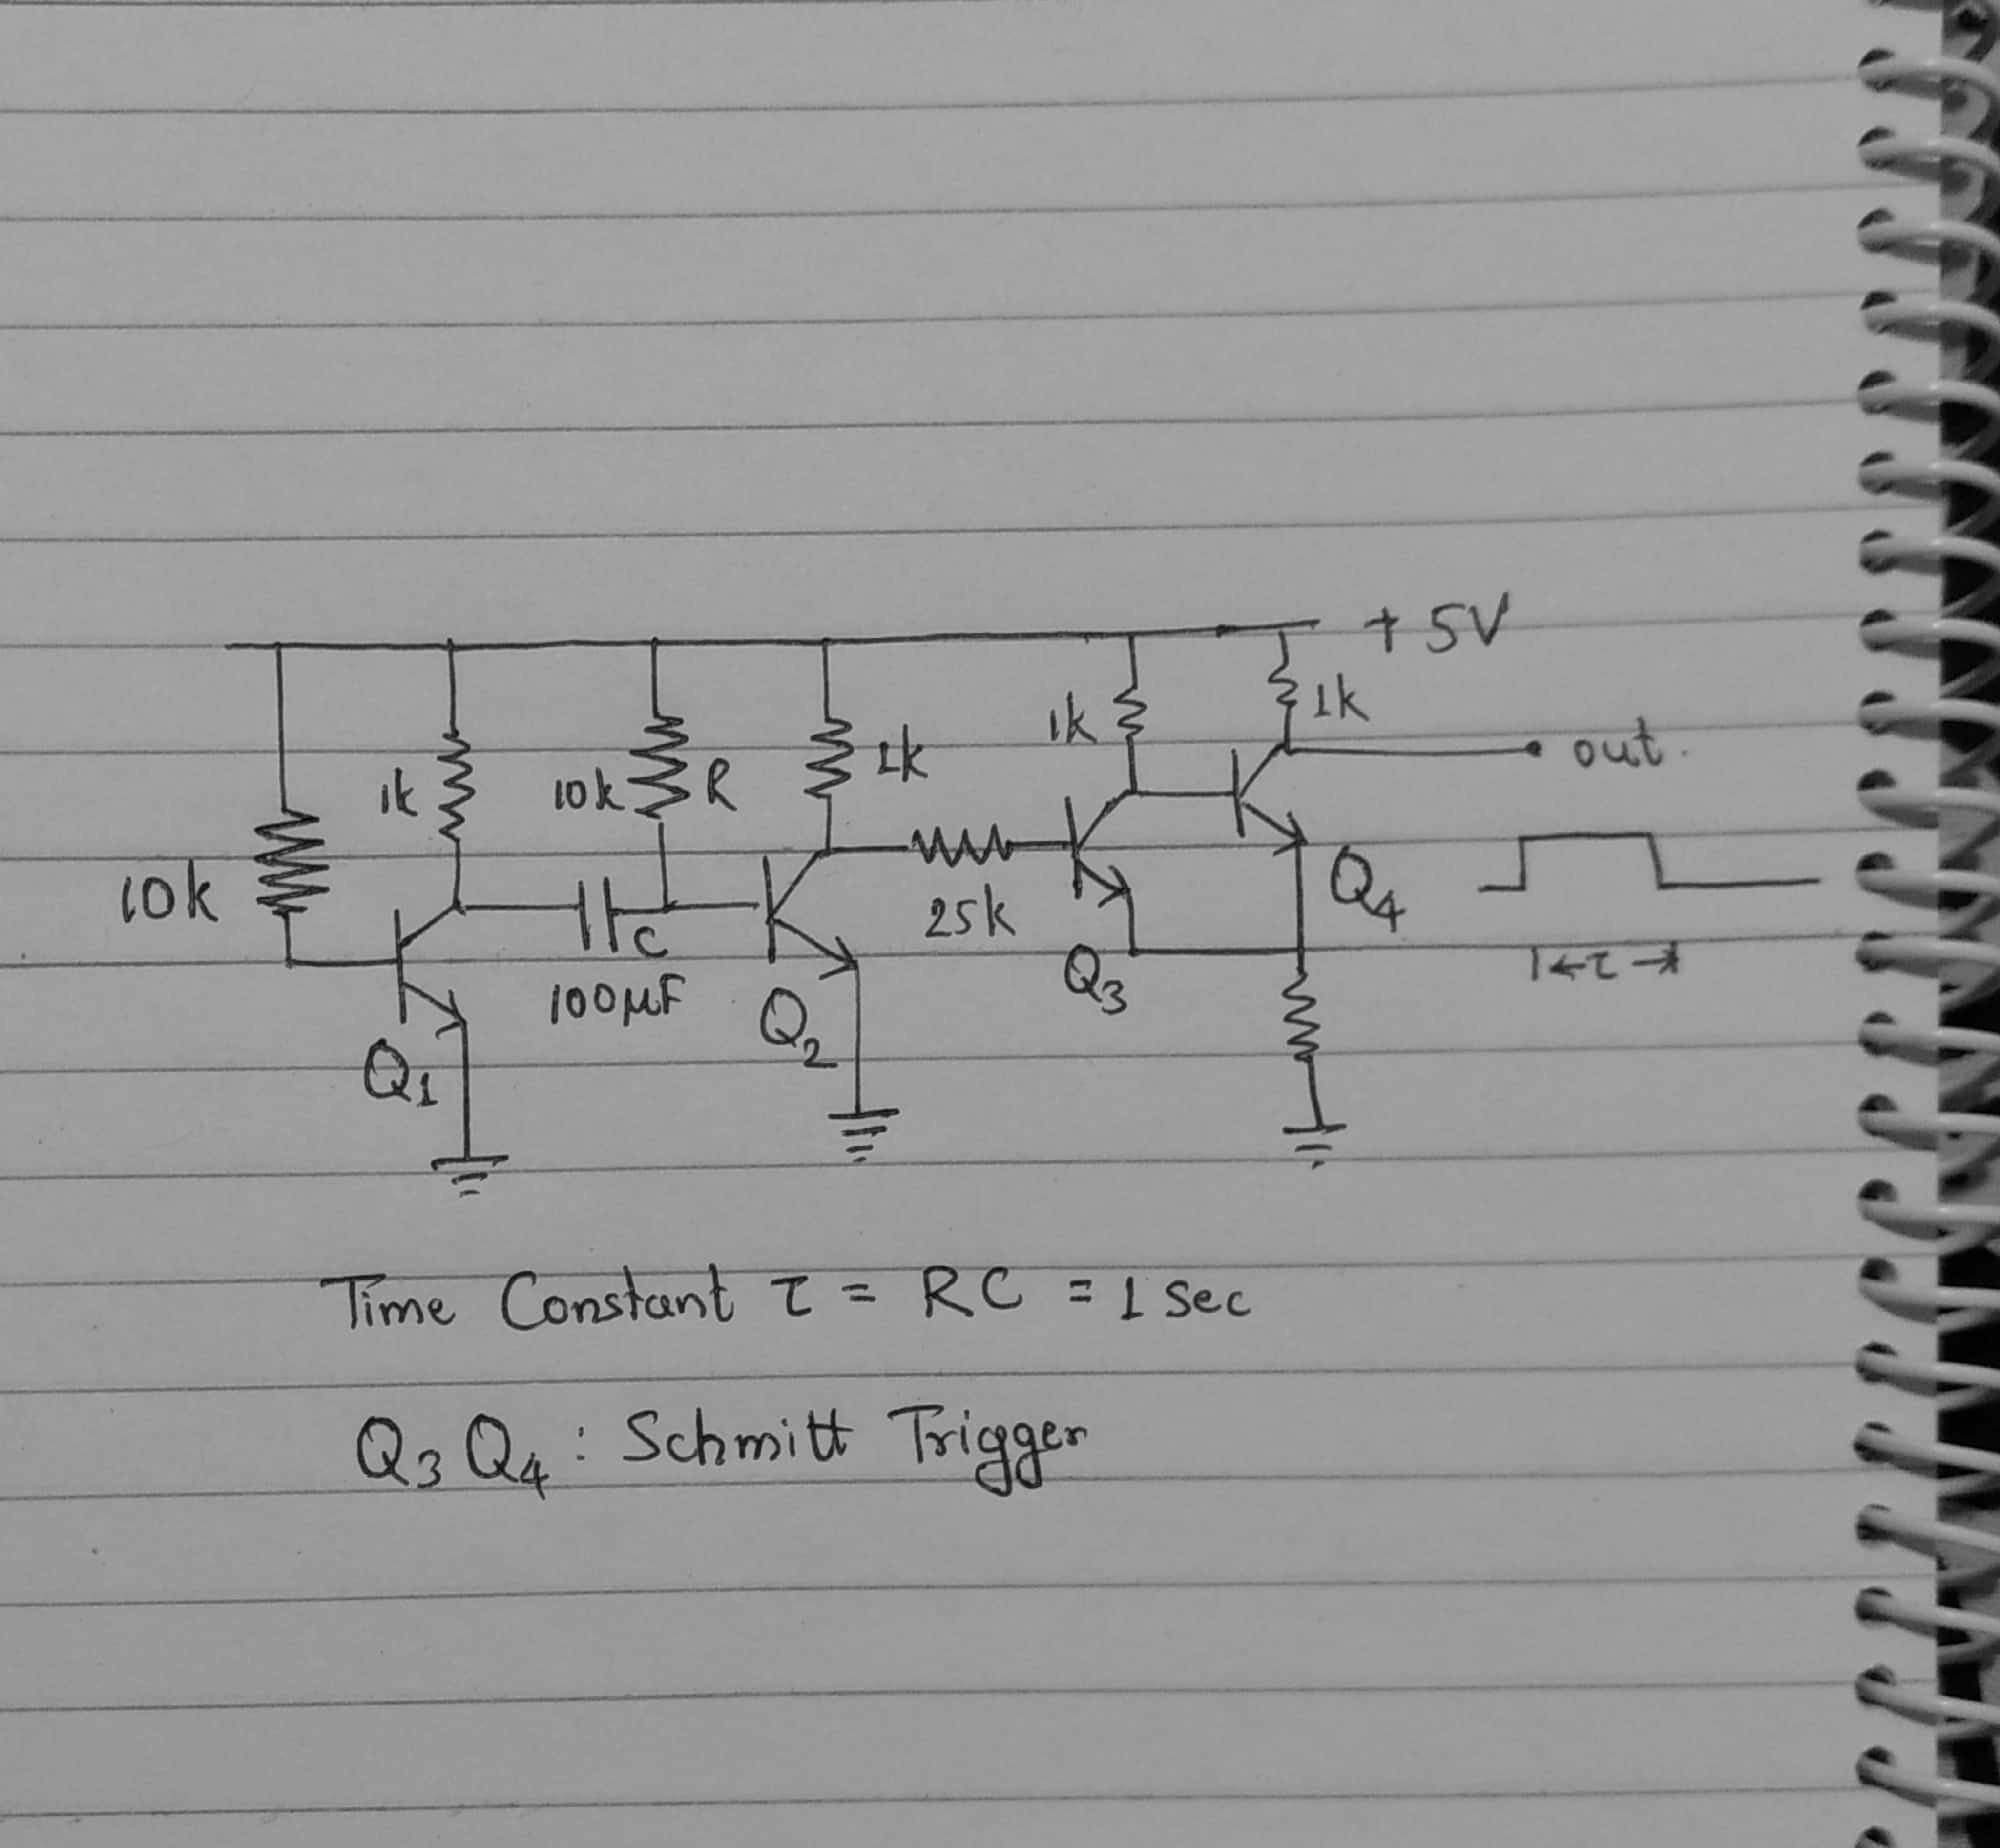 I Need A Timer Circuit That Switches Off The Power To 12v Lamp 555 Generating Delayed Pulse Schematic Timing Would Depend On Resistor R And Capacitor C In Above Are Chosen Such Way Output Is High For